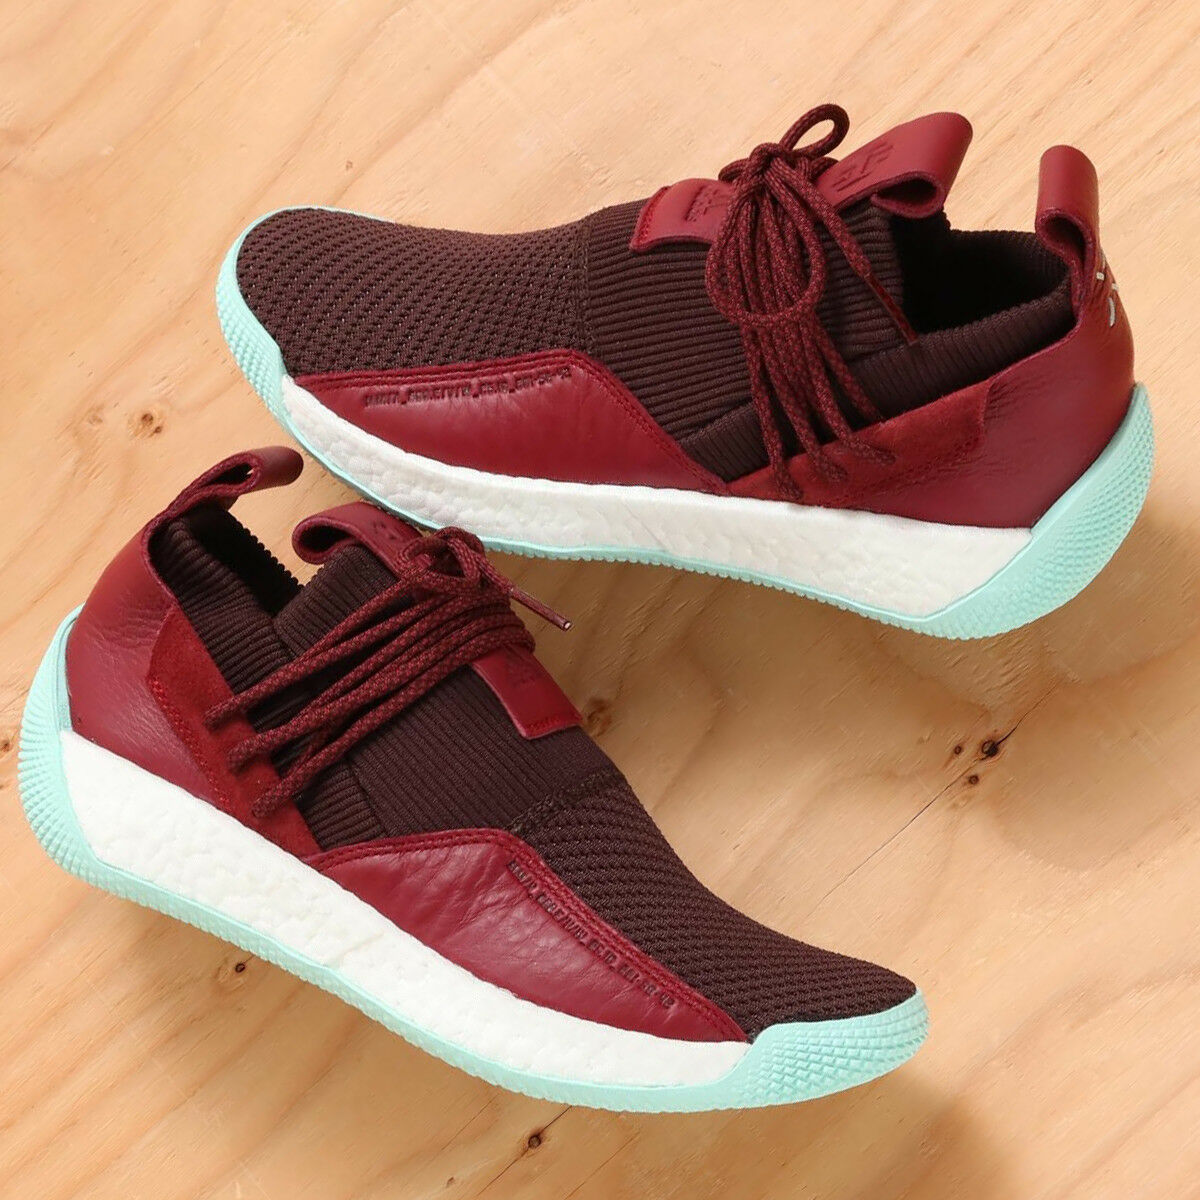 adidas Performance James Harden LS 2 Lace NEW DS Basketball Shoe CG6277 Maroon